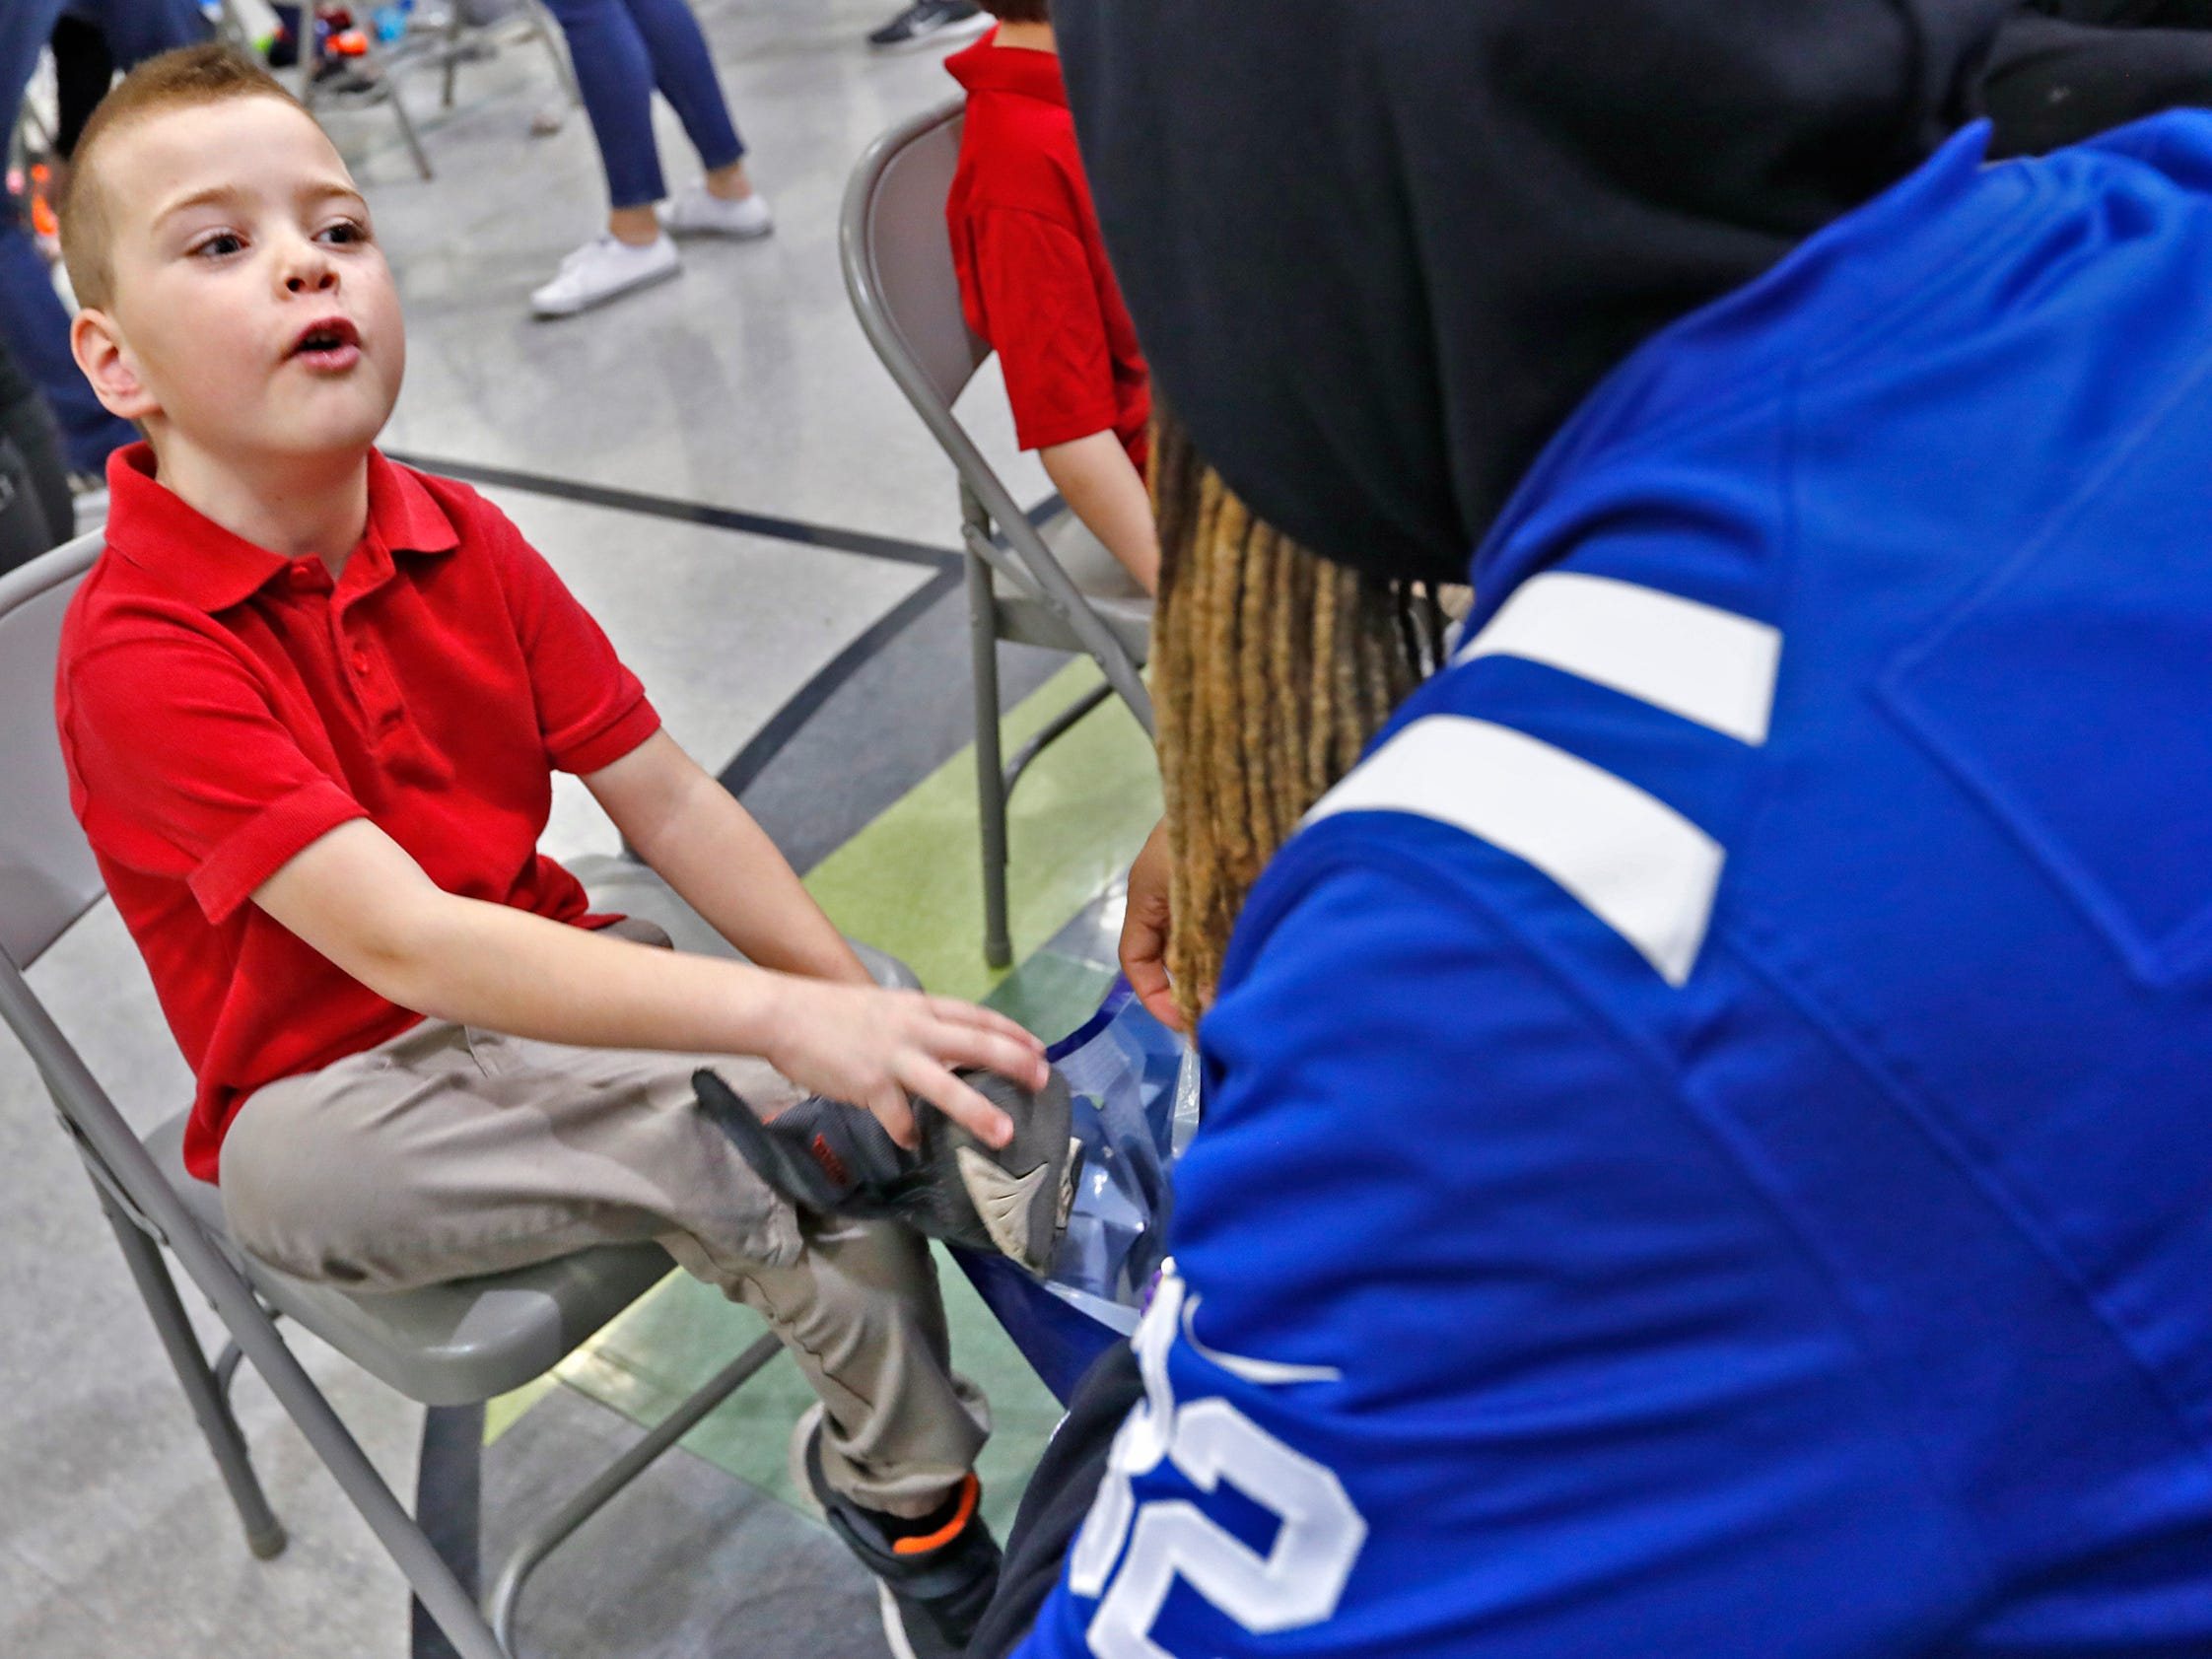 Cody Carter, left, talks with Indianapolis Colts' Jalen Collins while getting fitted for new shoes at Brookside School 54, Monday, Dec. 3, 2018.  Colts players and staff joined as LIDS Sports and its parent company Genesco fit and gave new shoes, socks, hats, and snacks to students as part of the 13th annual Cold Feet, Warm Shoes event.